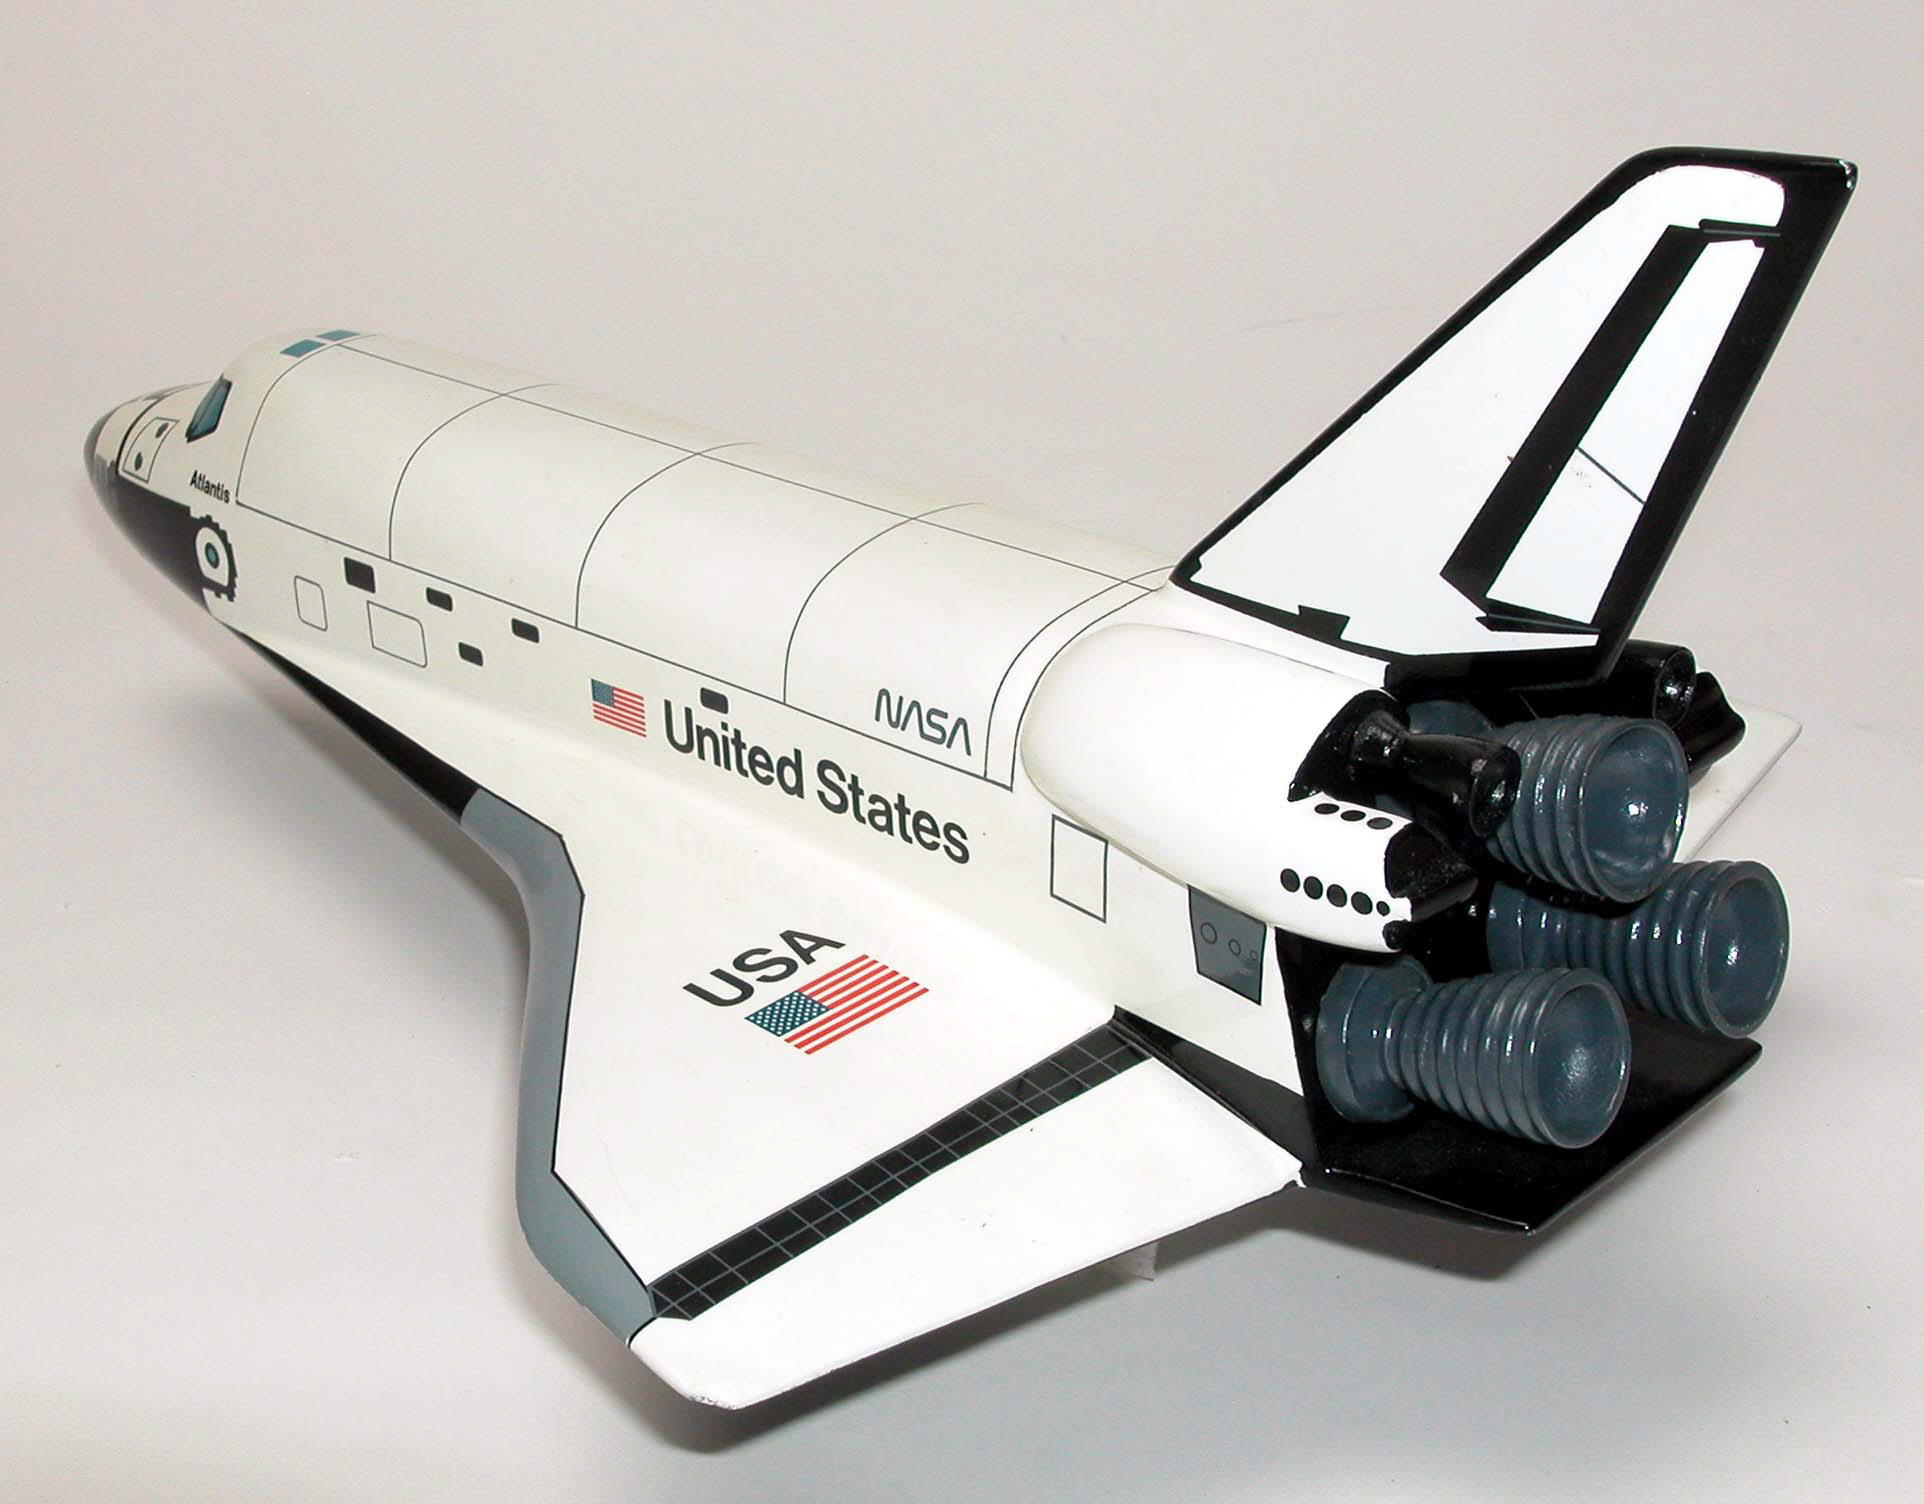 space shuttle atlantis which is orbiter - photo #6